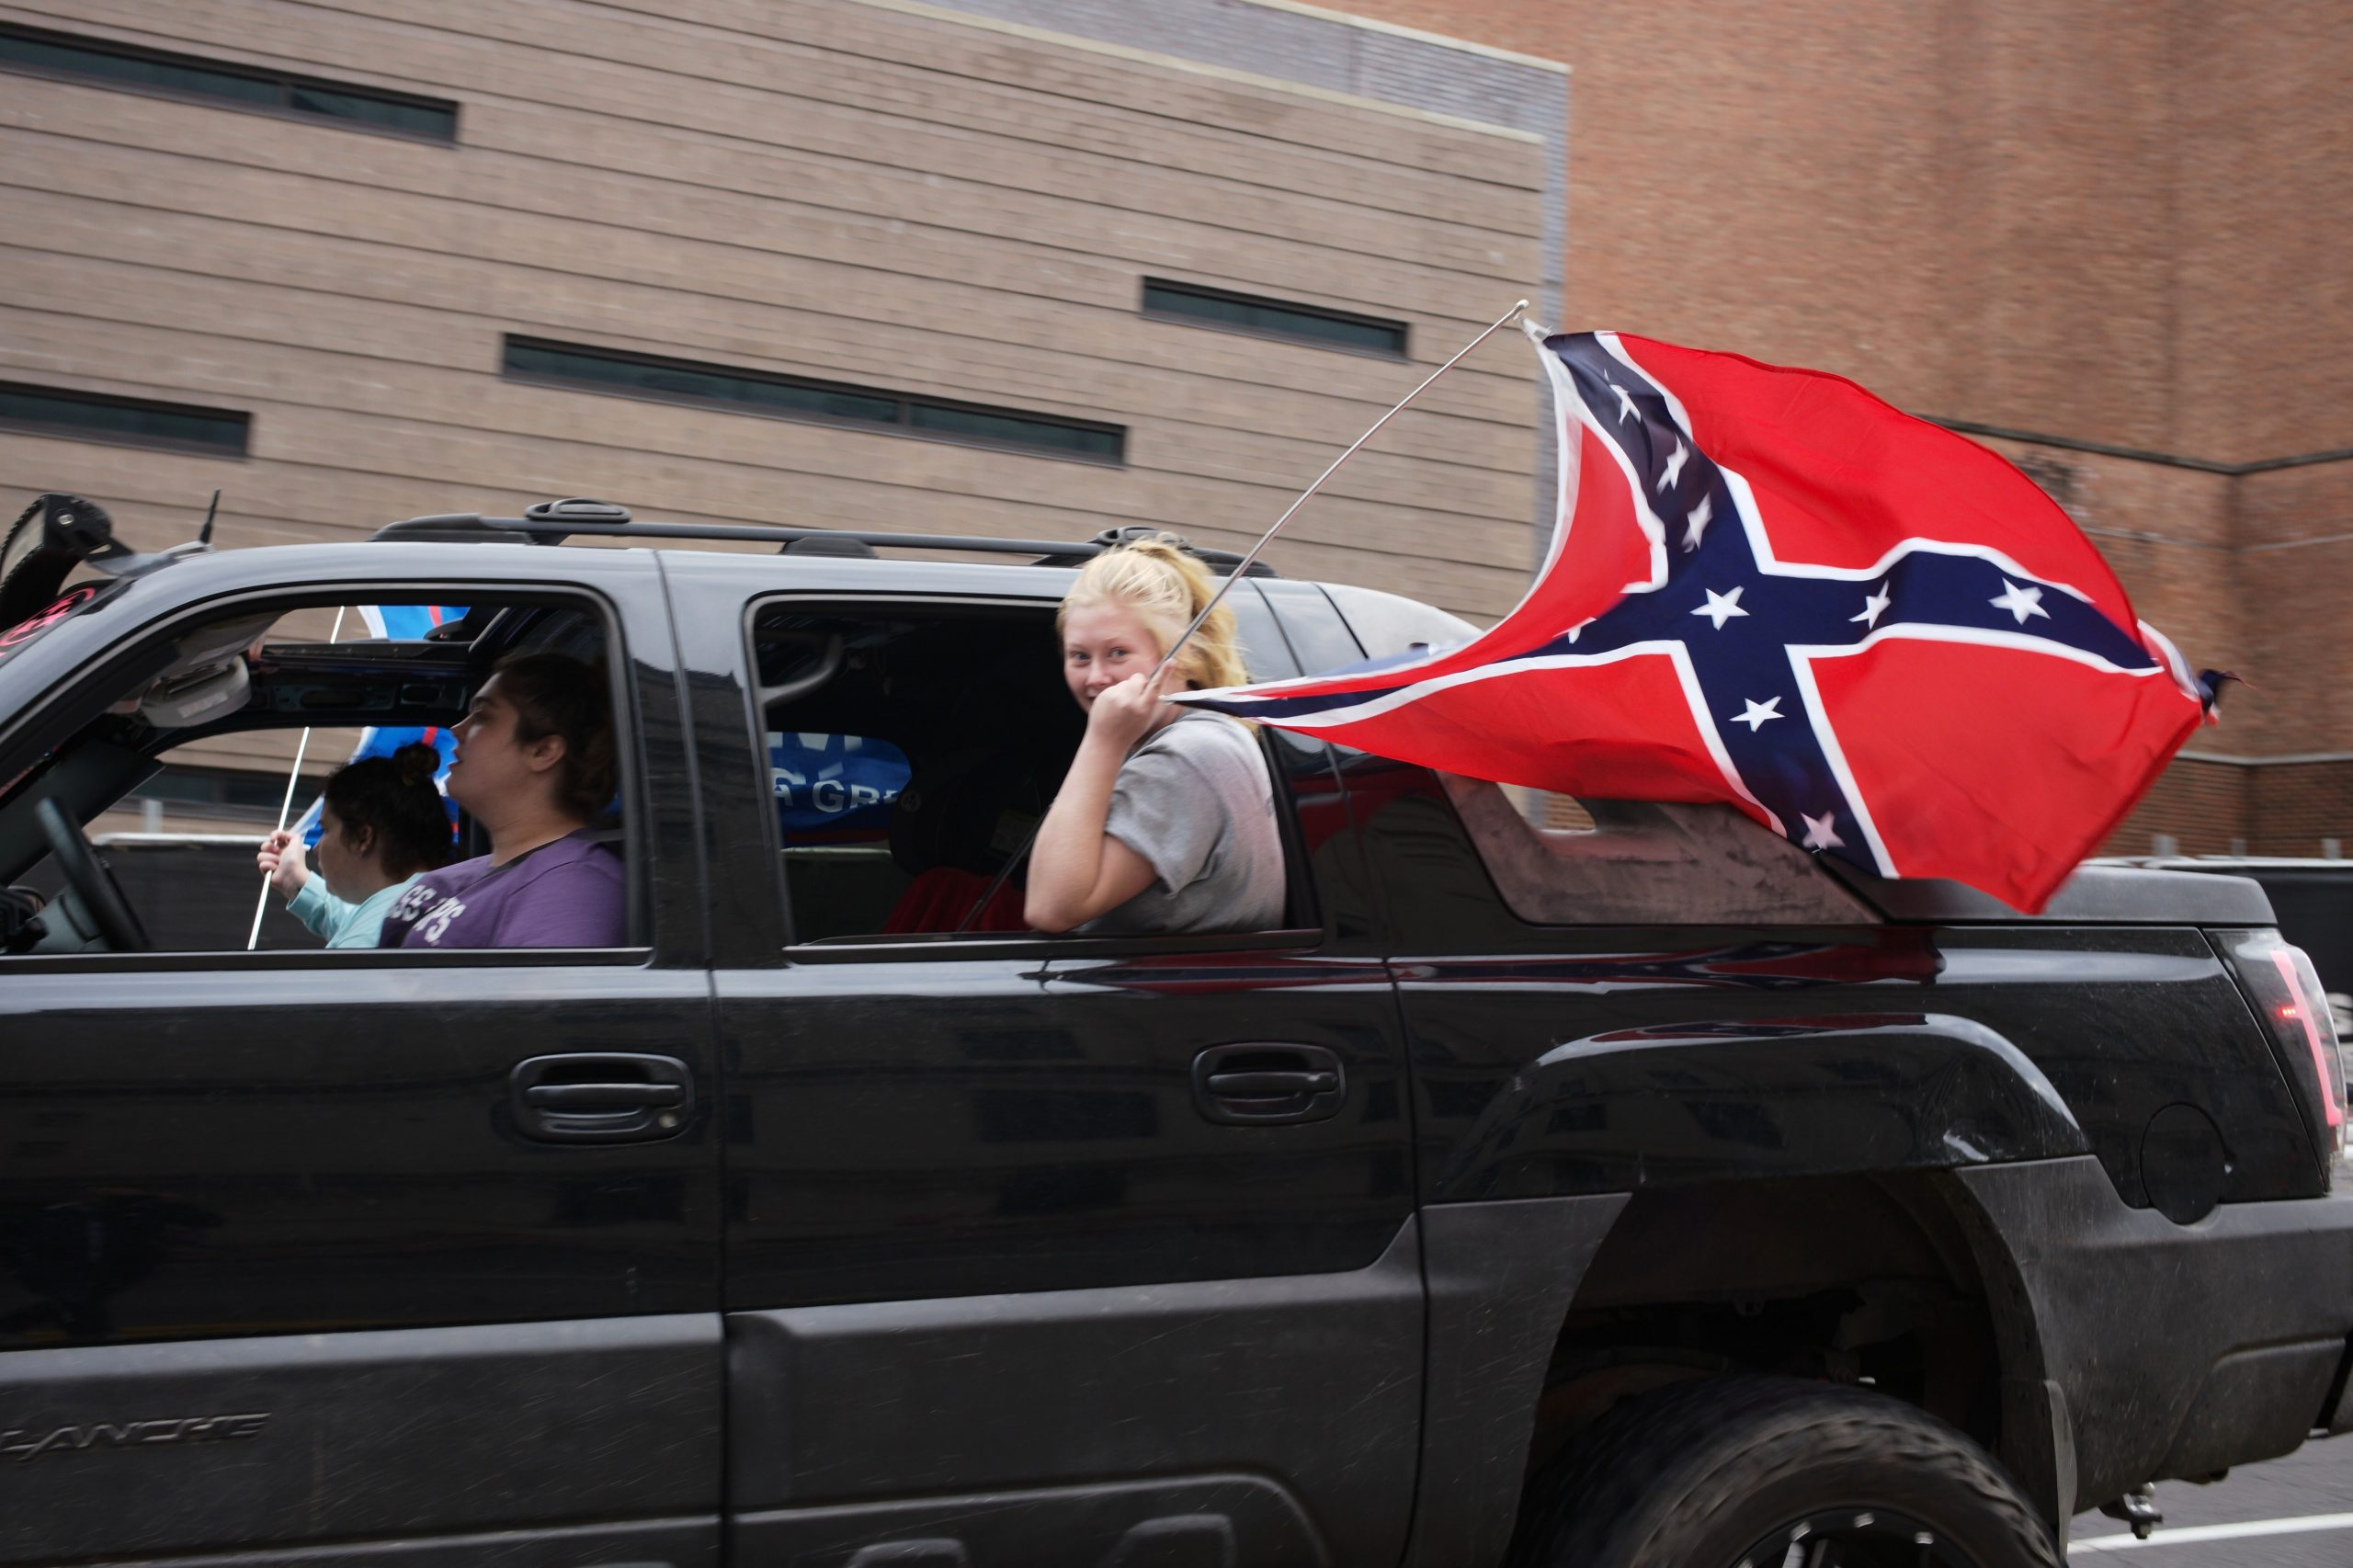 NASHVILLE, Tenn., Oct. 18- A young girl holds a Confederate battle flag during a Pro Trump parade down Lower Broadway where a long line of around 100 vehicles gathered for the Trucks for Trump rally, with Trump, American, Gadsden and Confederate flags attached, honking their horns in support. (Photo: Ray Di Pietro)